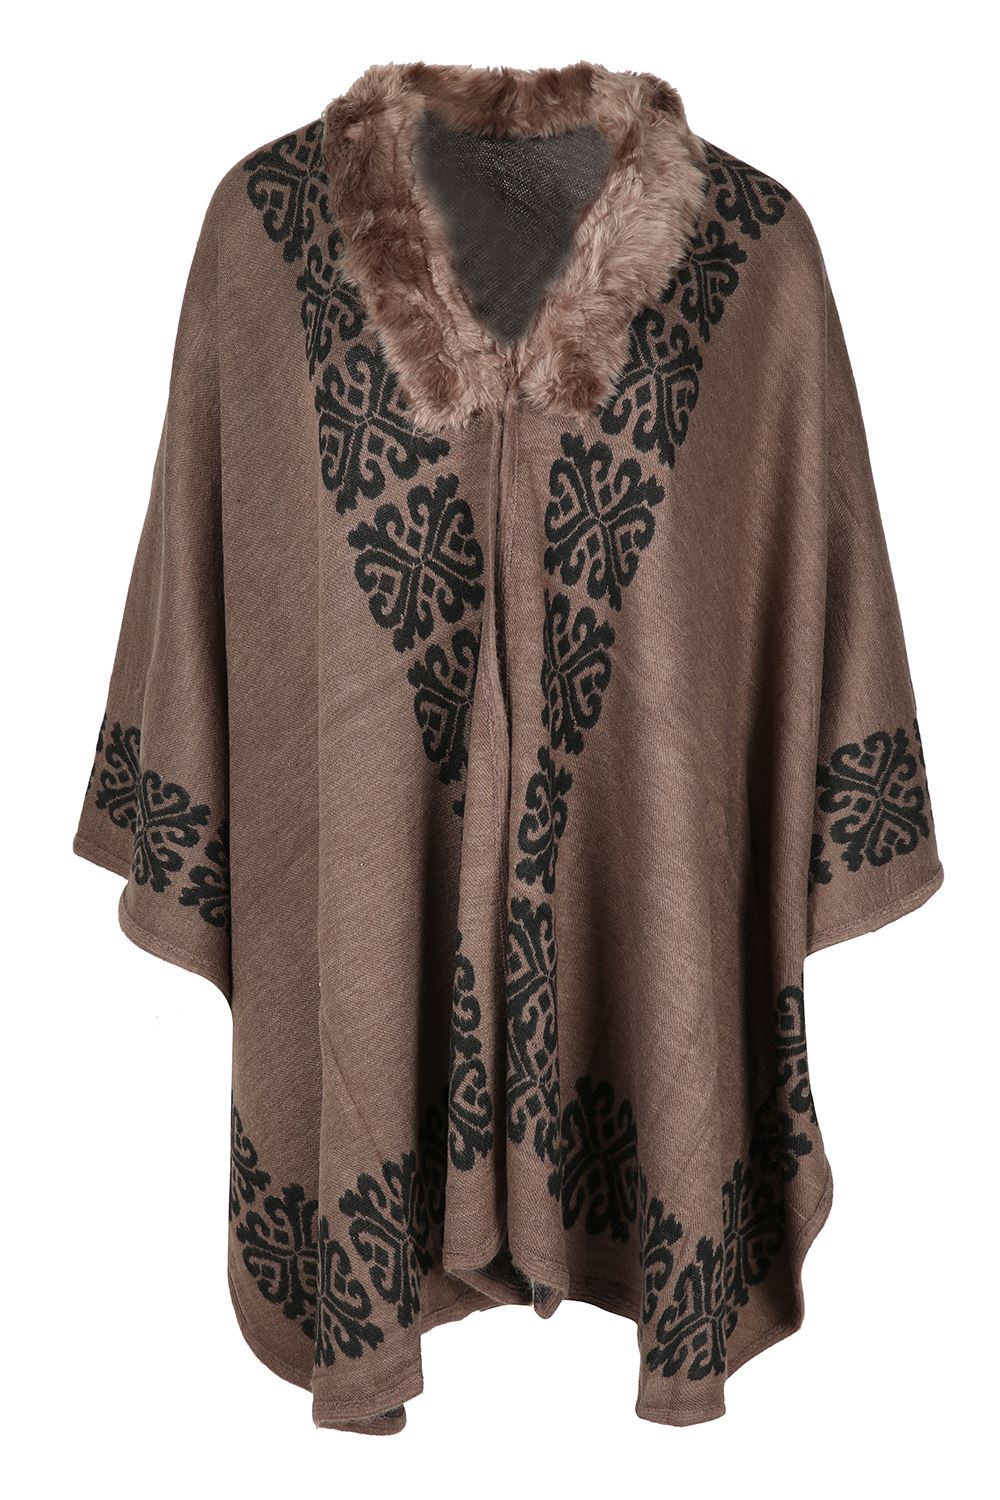 Yours Elegantly offers an exclusive collection of Pashmina Shawls Evening Wraps Ruana Wraps on Sale. Buy Affordable Cashmere scarves shawls & Wraps, Women's Cotton Tunics, Indian Tunics XS to 4X 50% % off on Sale.